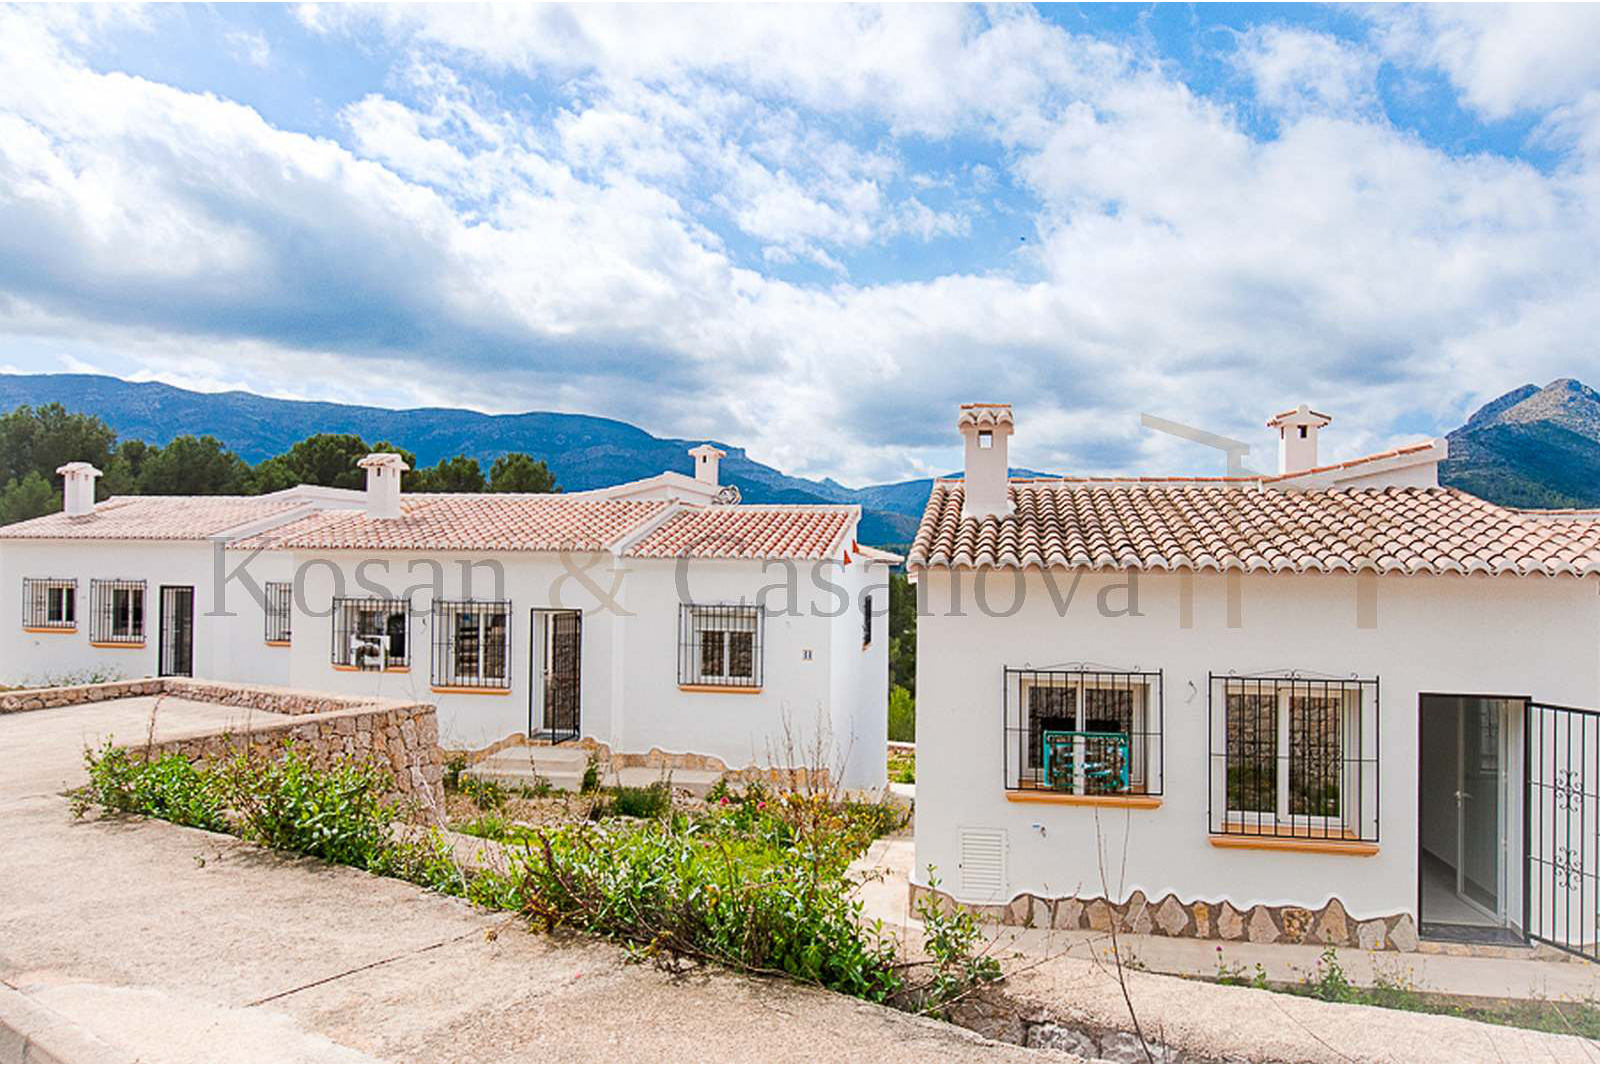 Murla- Detached villas, ready to move into on the Costa Blanca pic 4